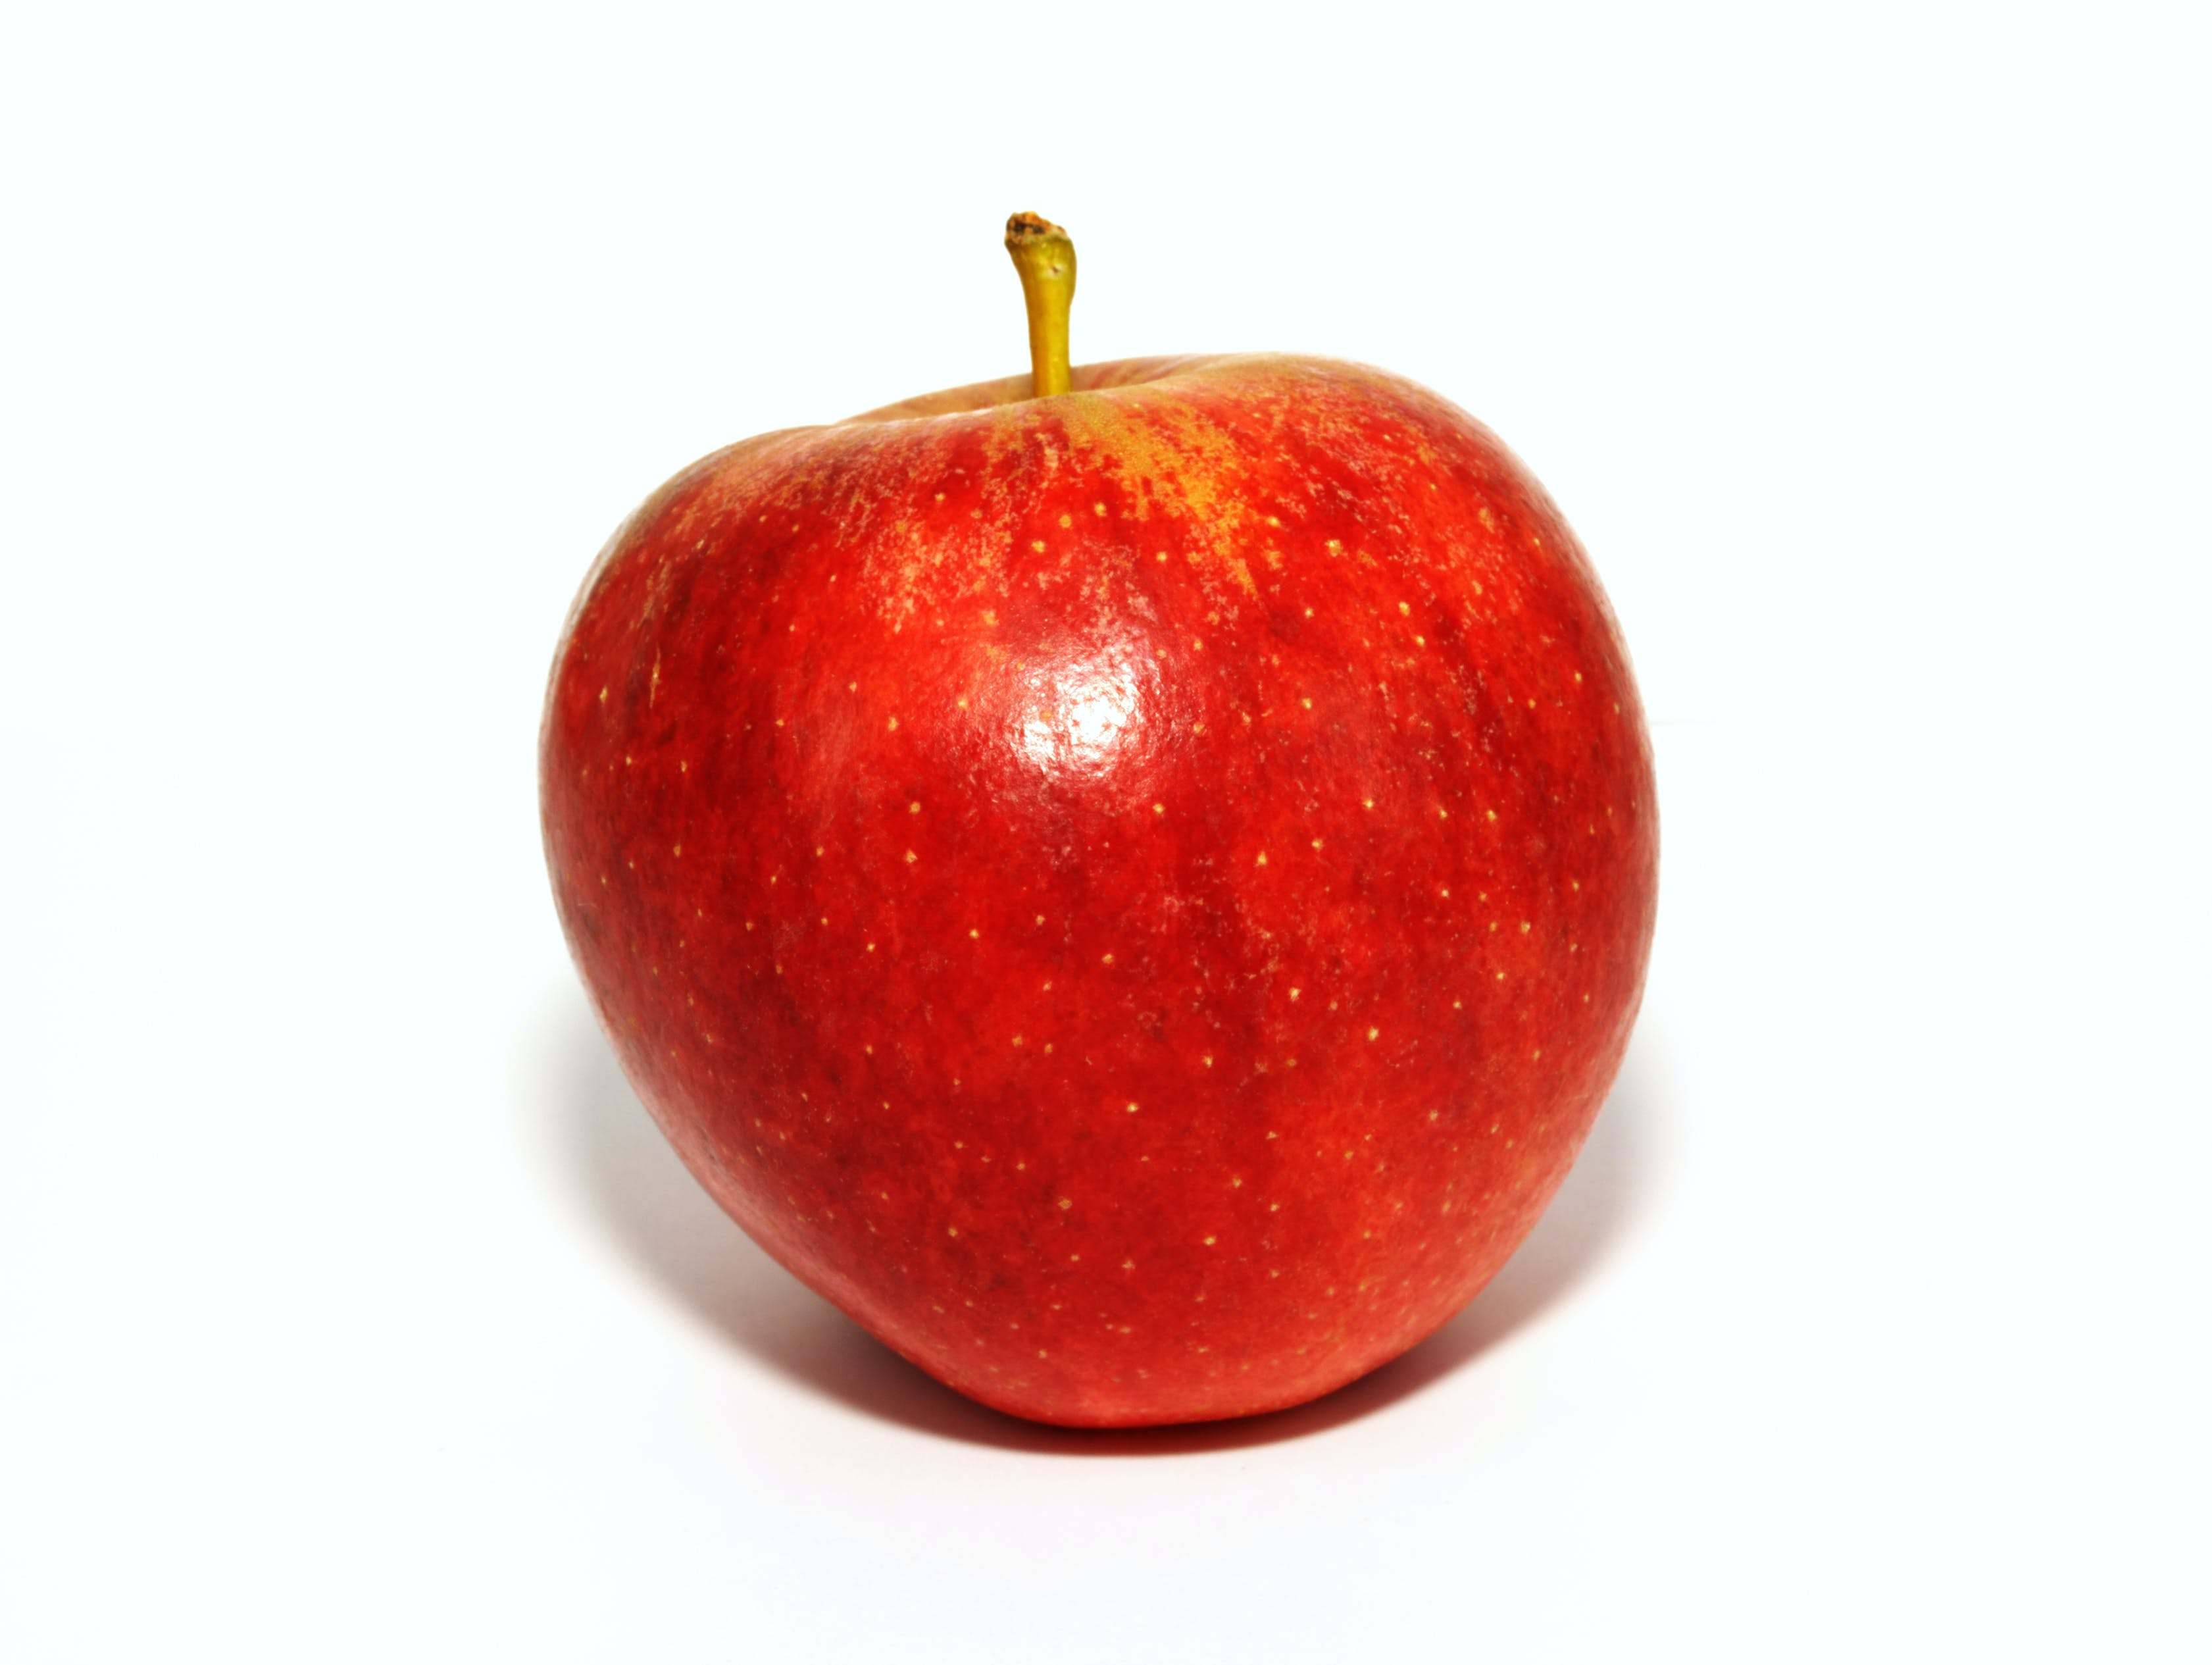 Free stock photo of healthy, red, apple, sweet